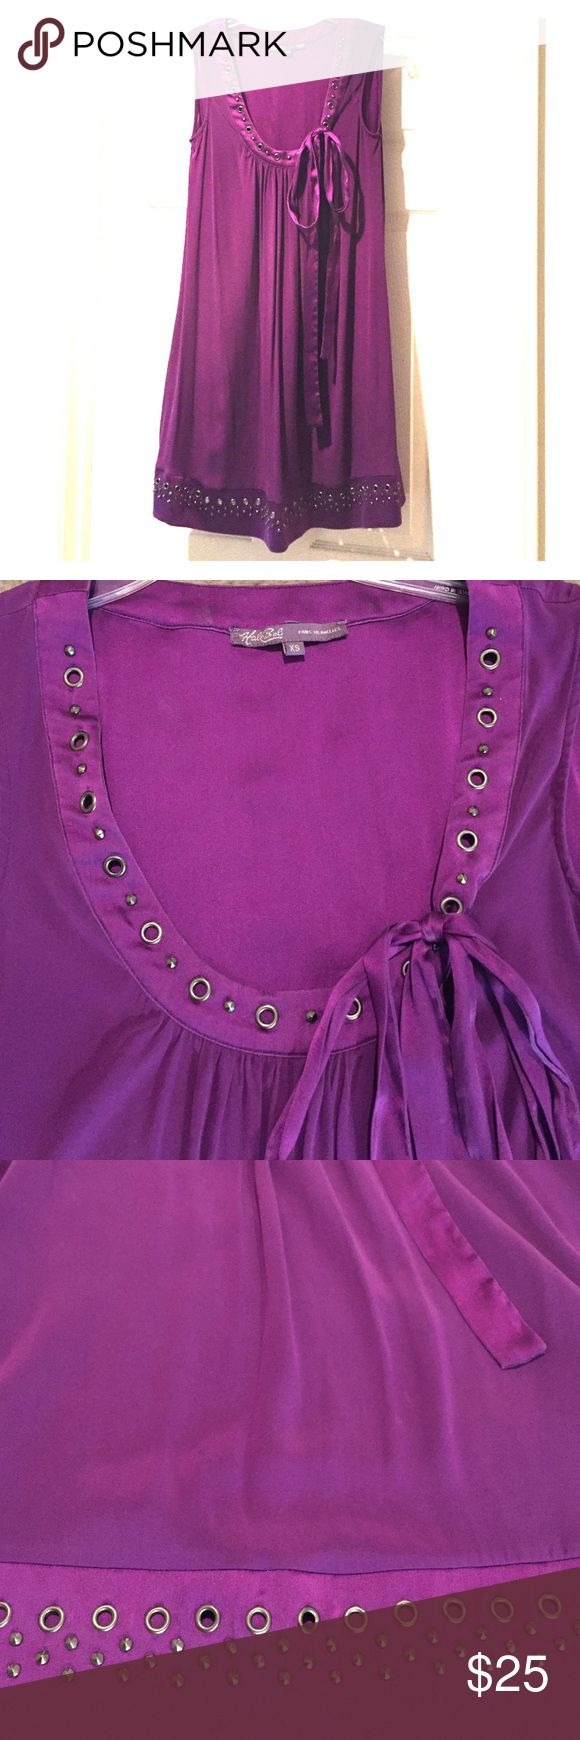 Hale Bob Dress Purple dress with crew neck and bottom trim decorated with grommets and studs on the front for a stylish look. No decoration on the back. 94% silk and 5% spandex. Loose fit. Used and in great condition. Hale Bob Dresses